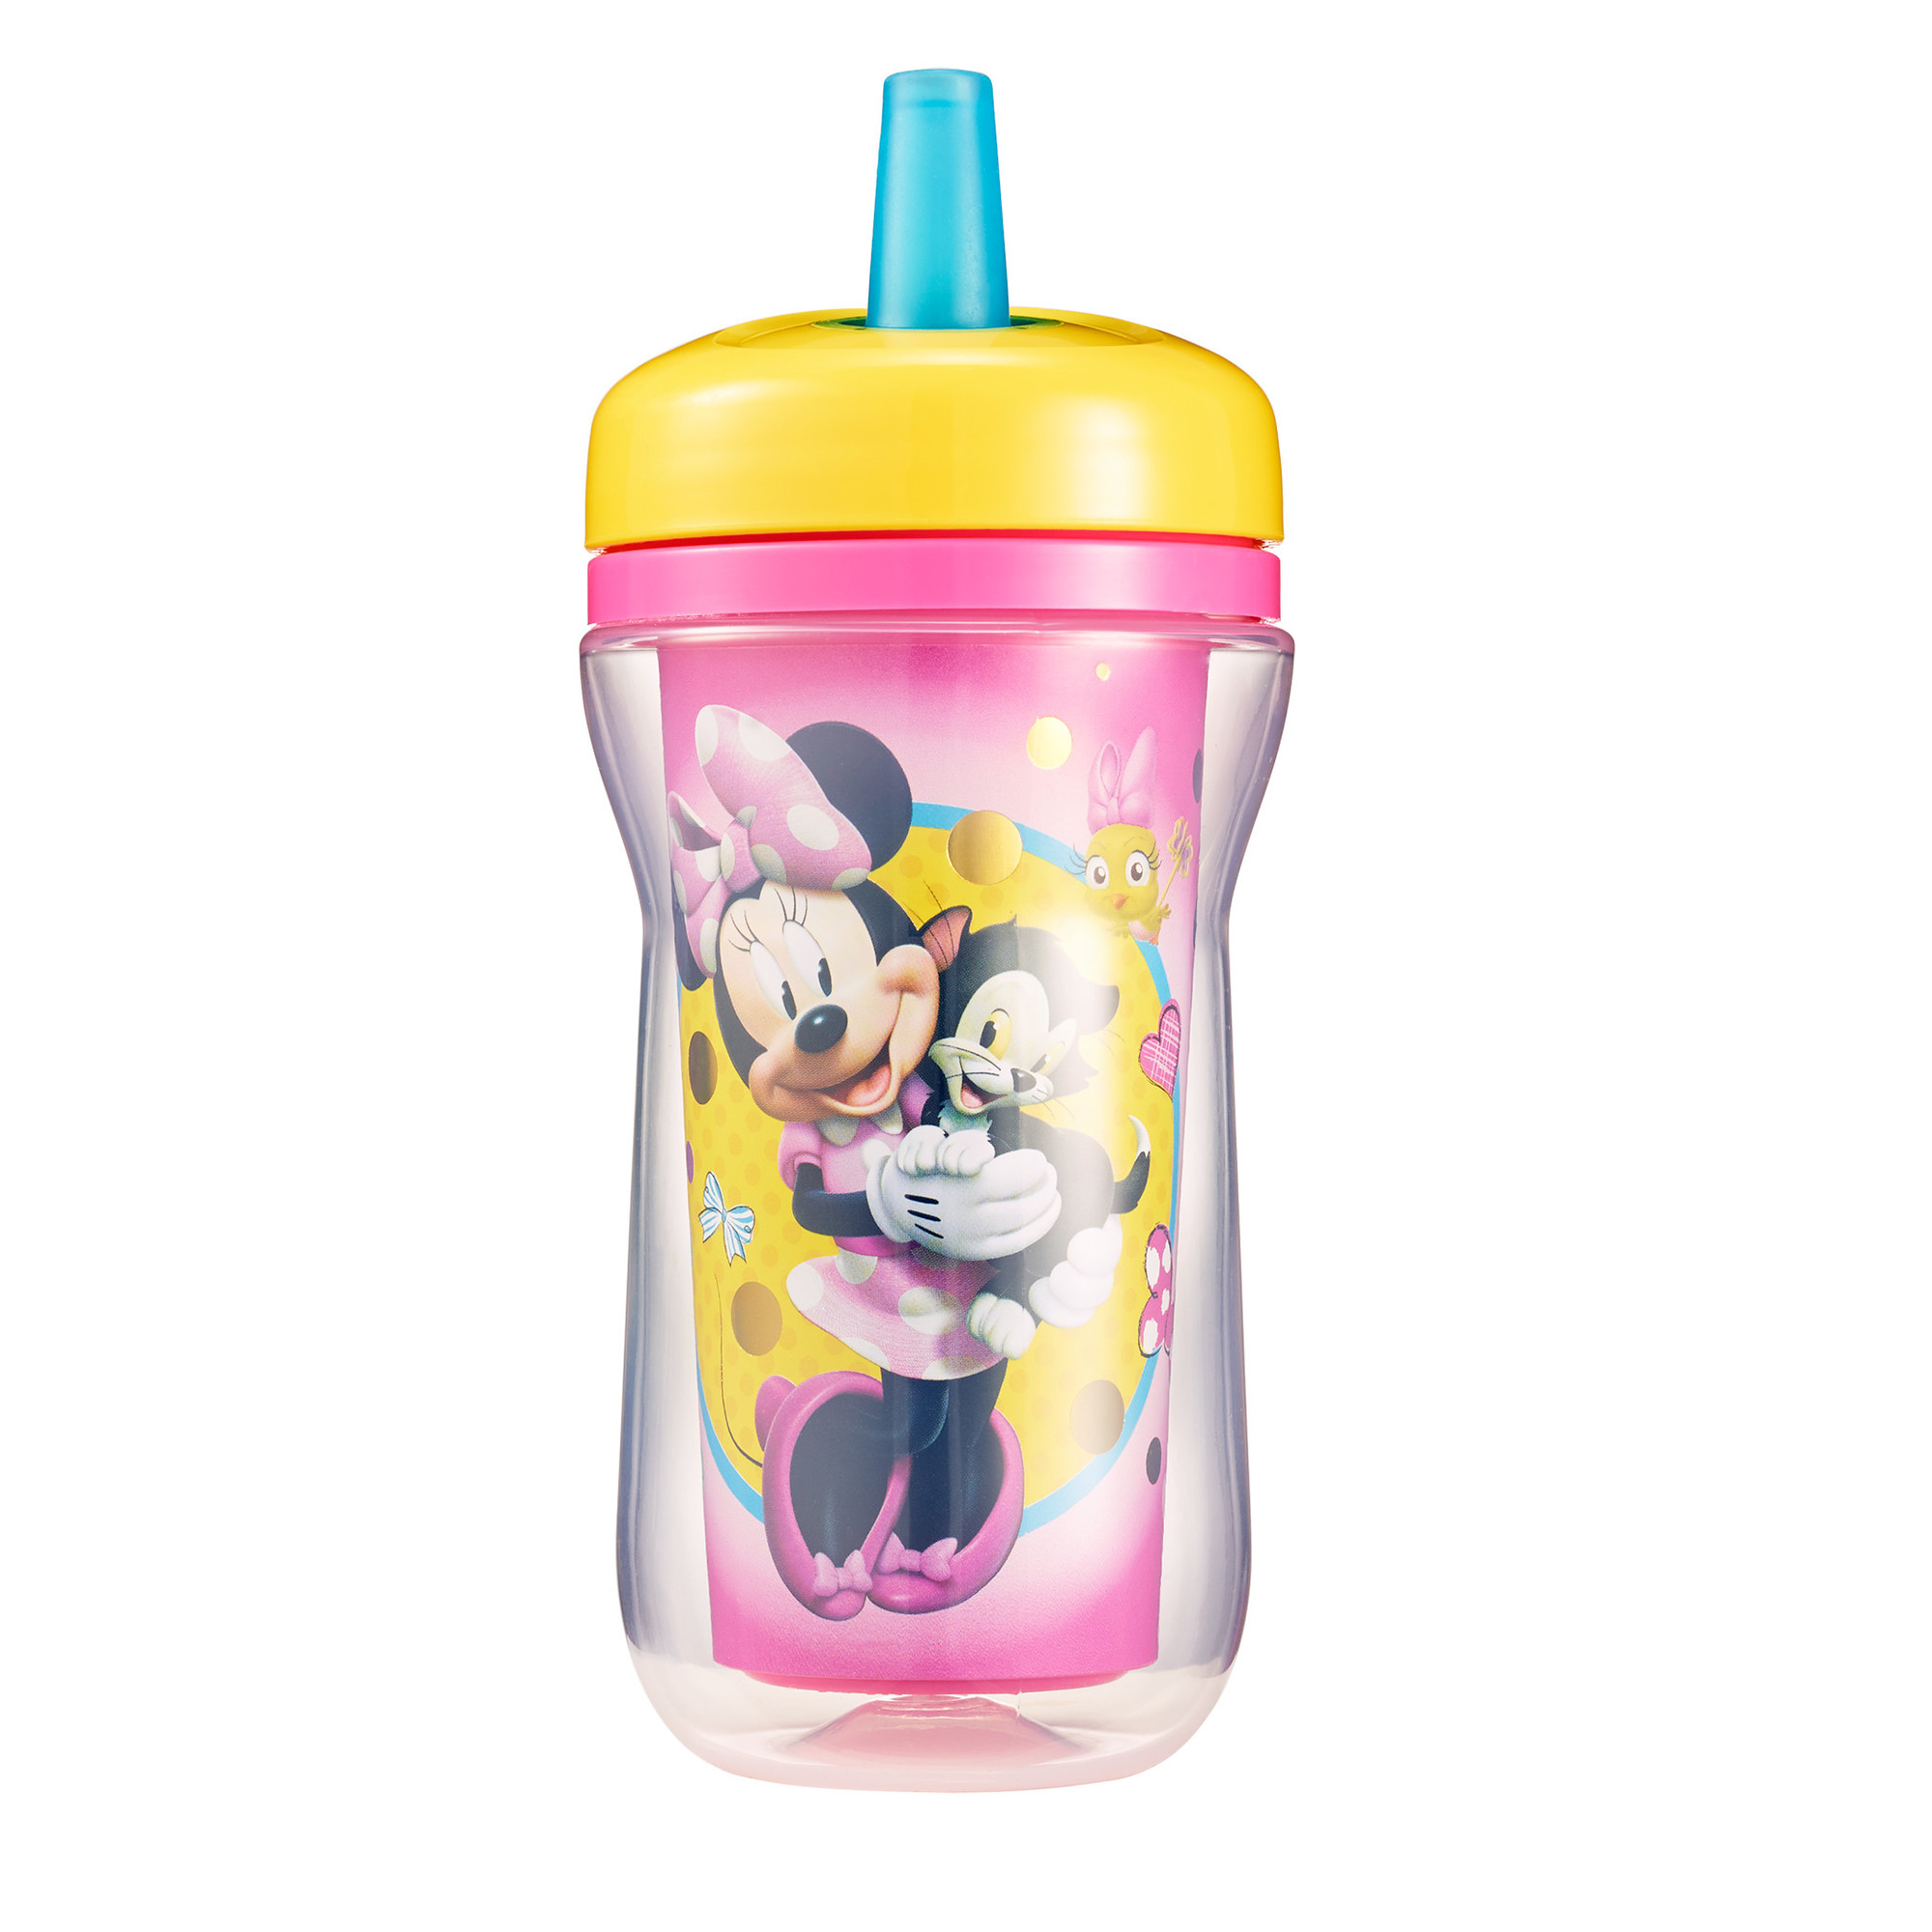 The First Years Disney Insulated BPA-Free Straw Cup & Lid, Minnie Mouse